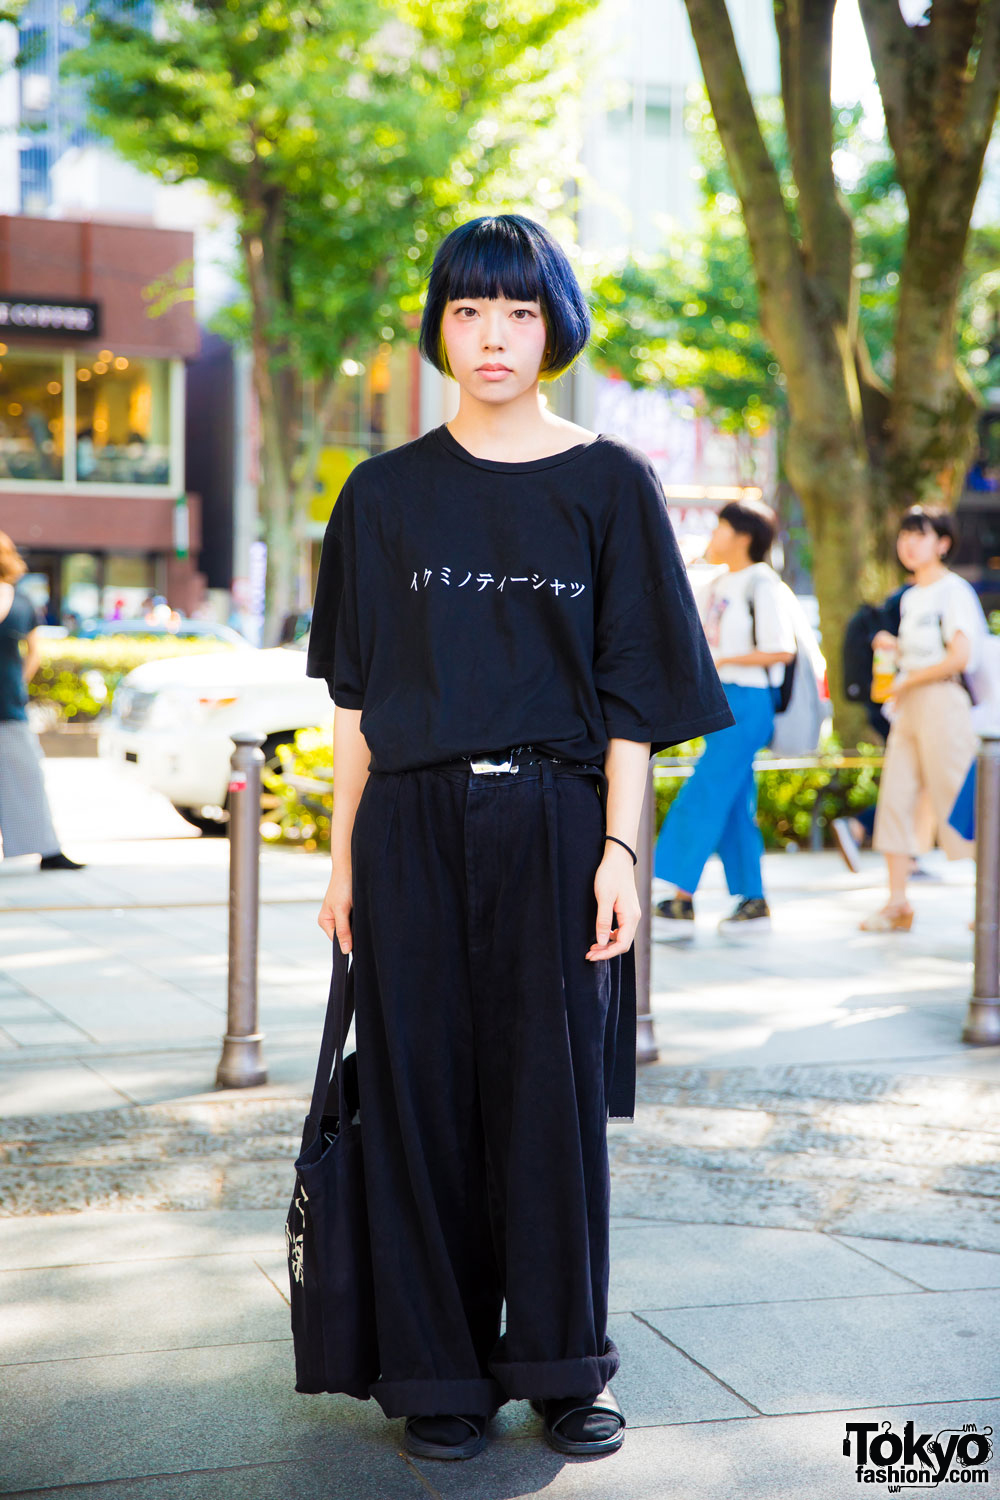 All Black Minimalist Japanese Street Fashion W Ikumi Wacko Maria: japanese fashion style icon